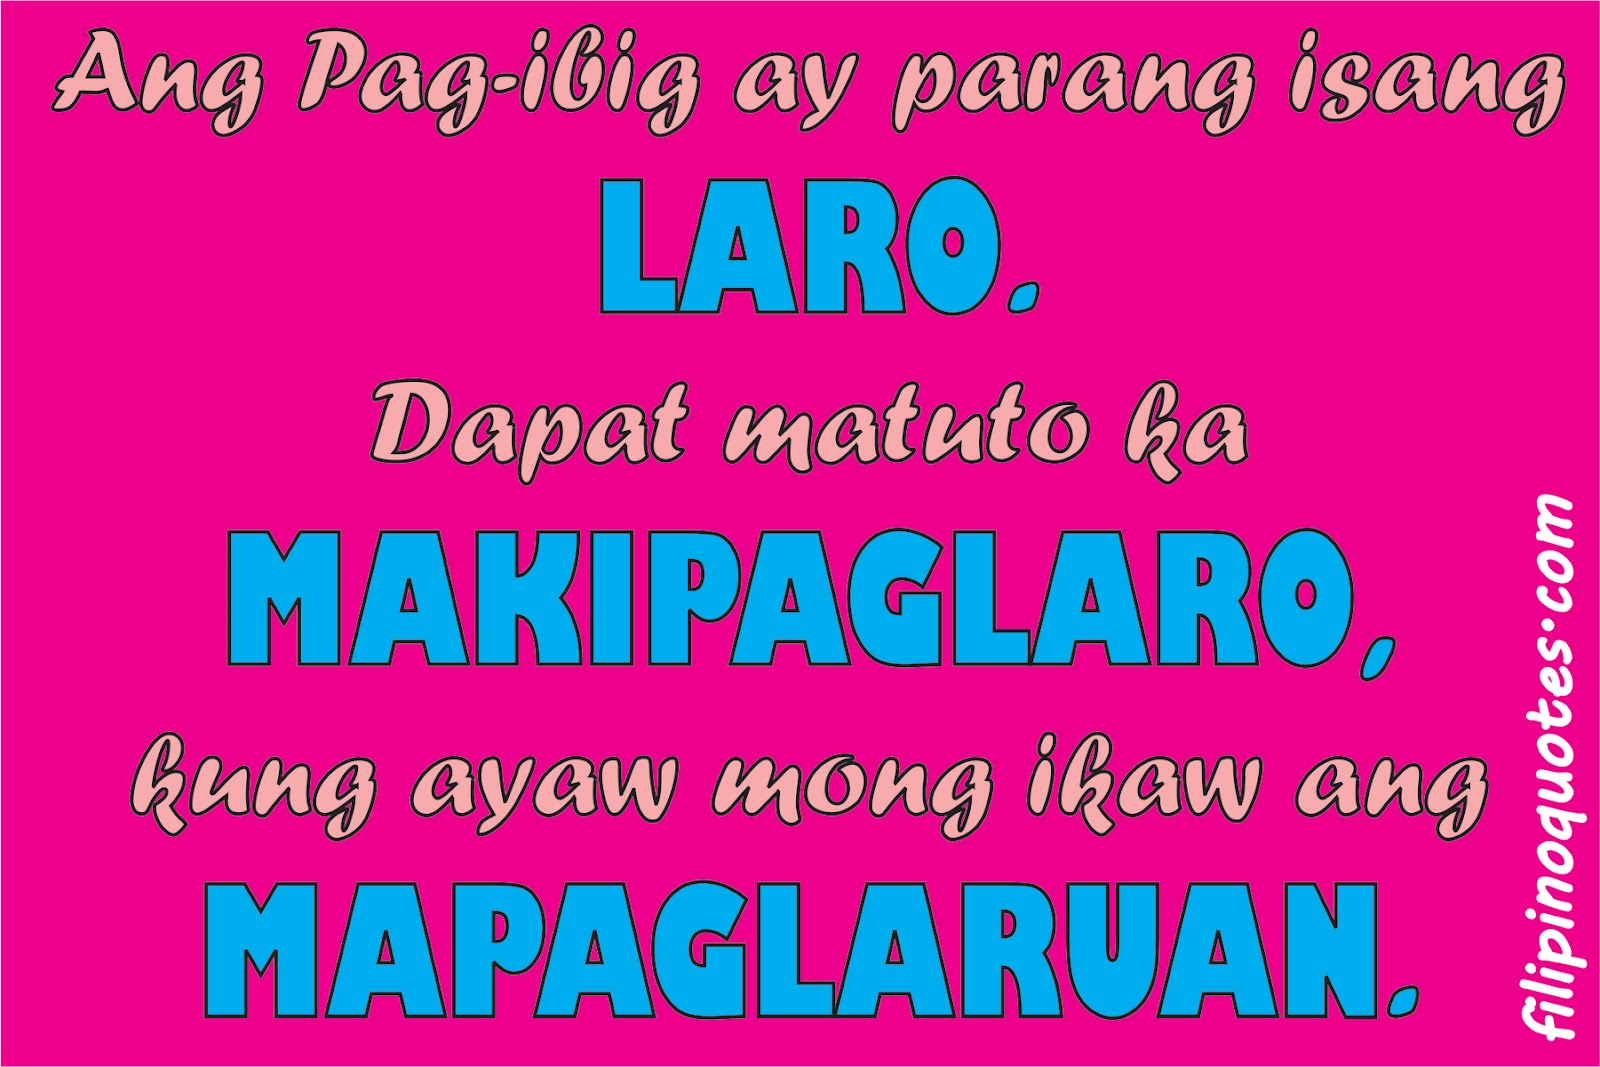 Quotes Between Love And Friendship Tagalog : filipino tagalog love quotes www filipinoquotes com tagalog love ...